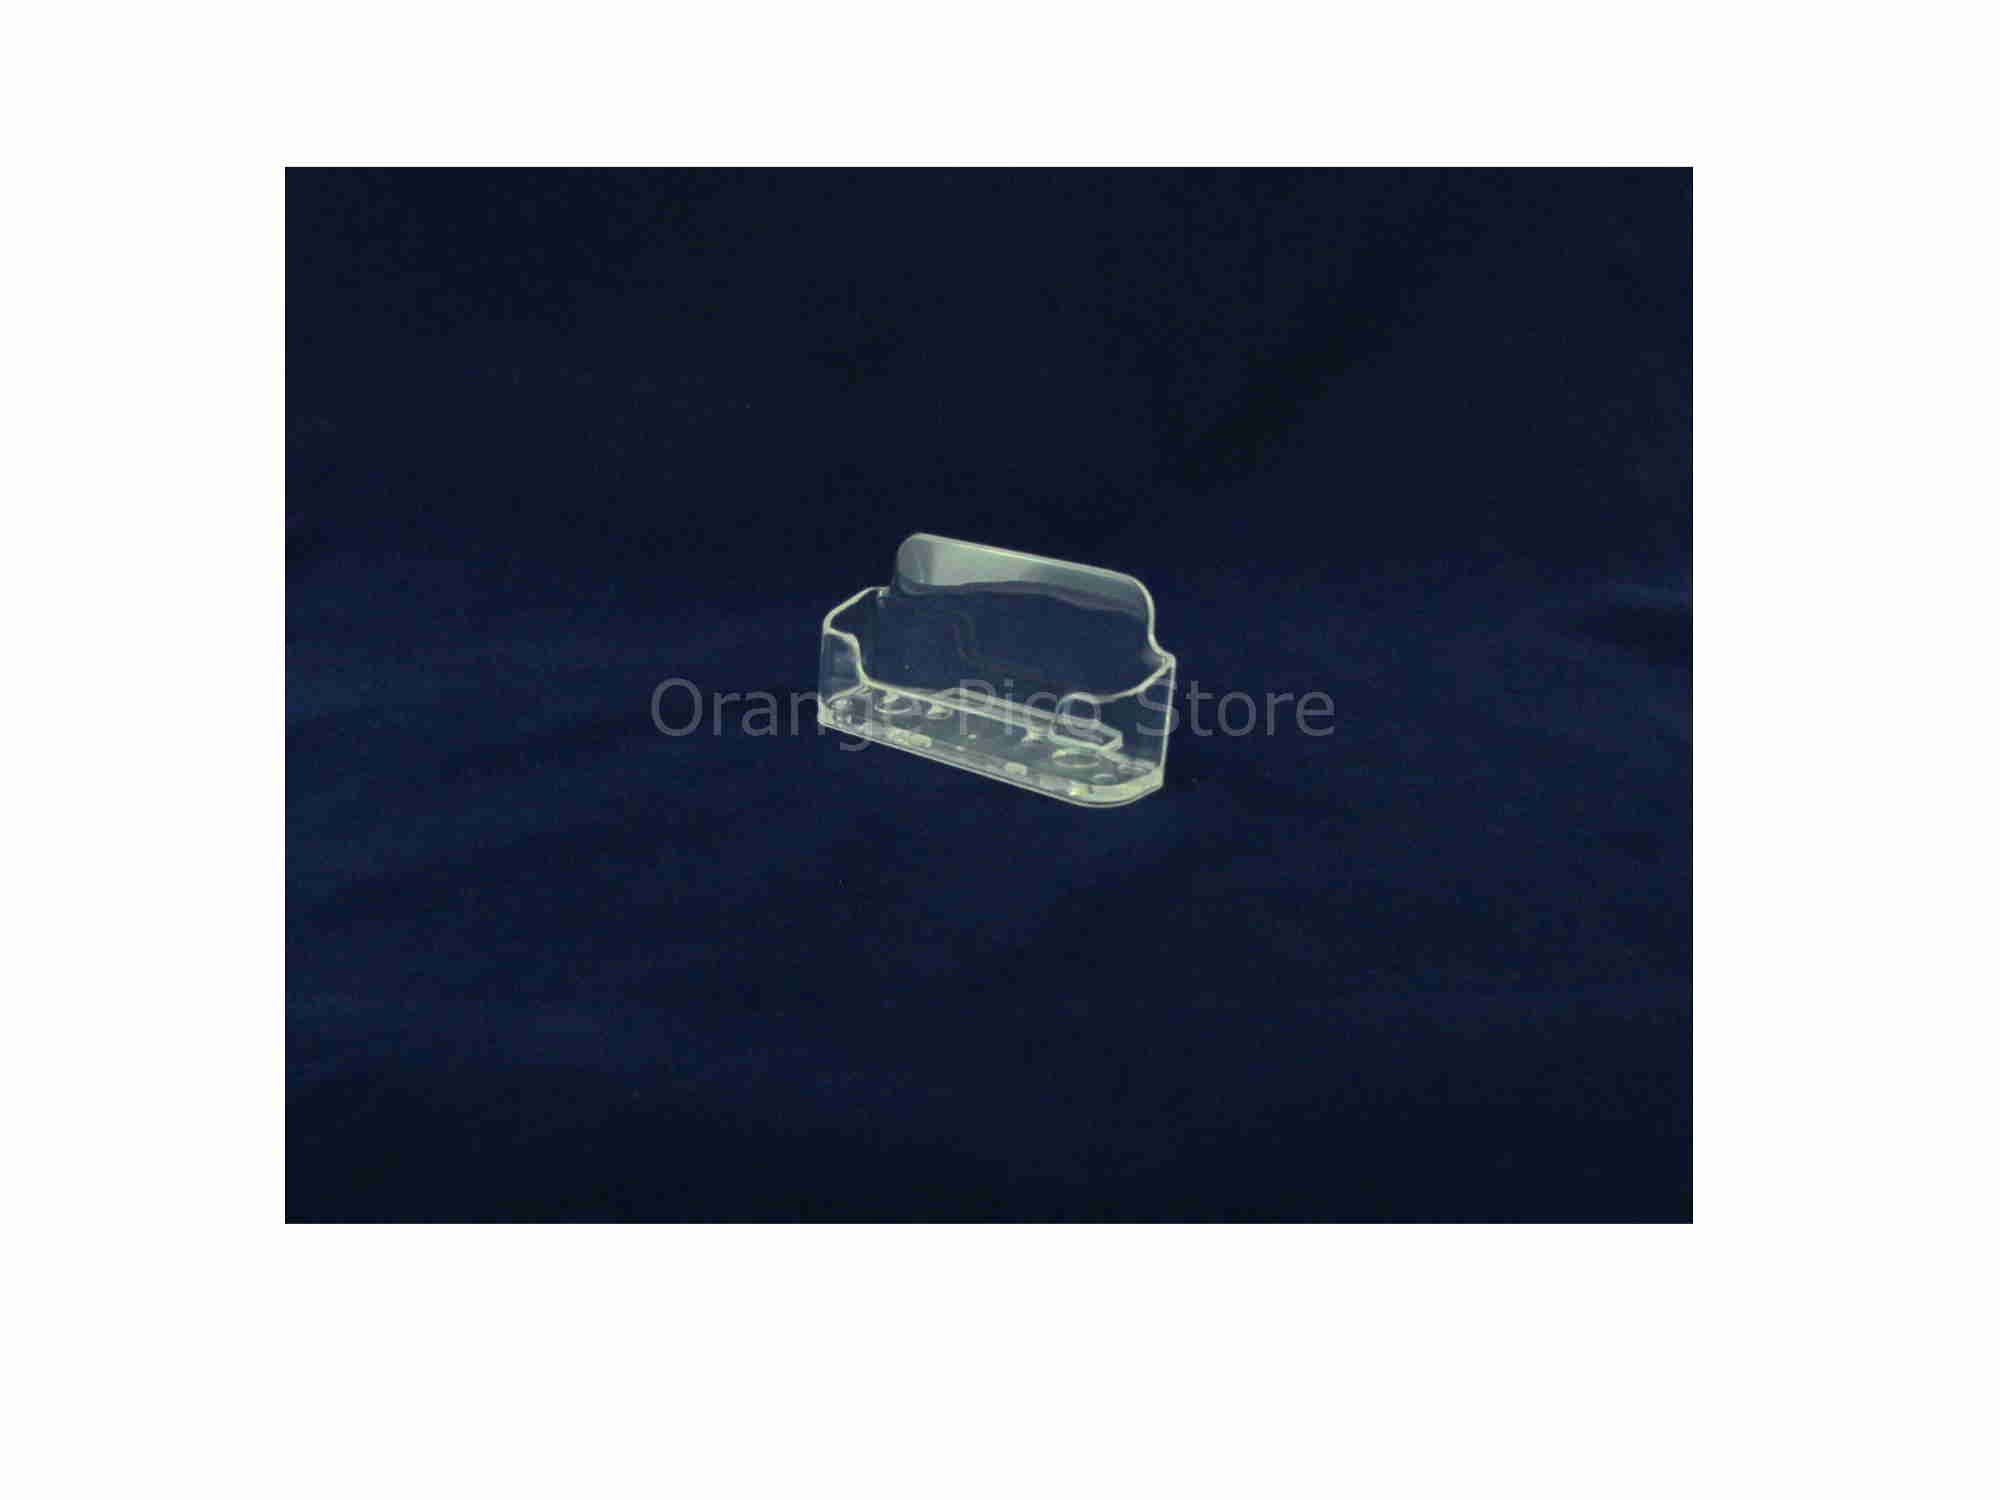 Orange pico store equipment co all display fixtures for retail business card holder colourmoves